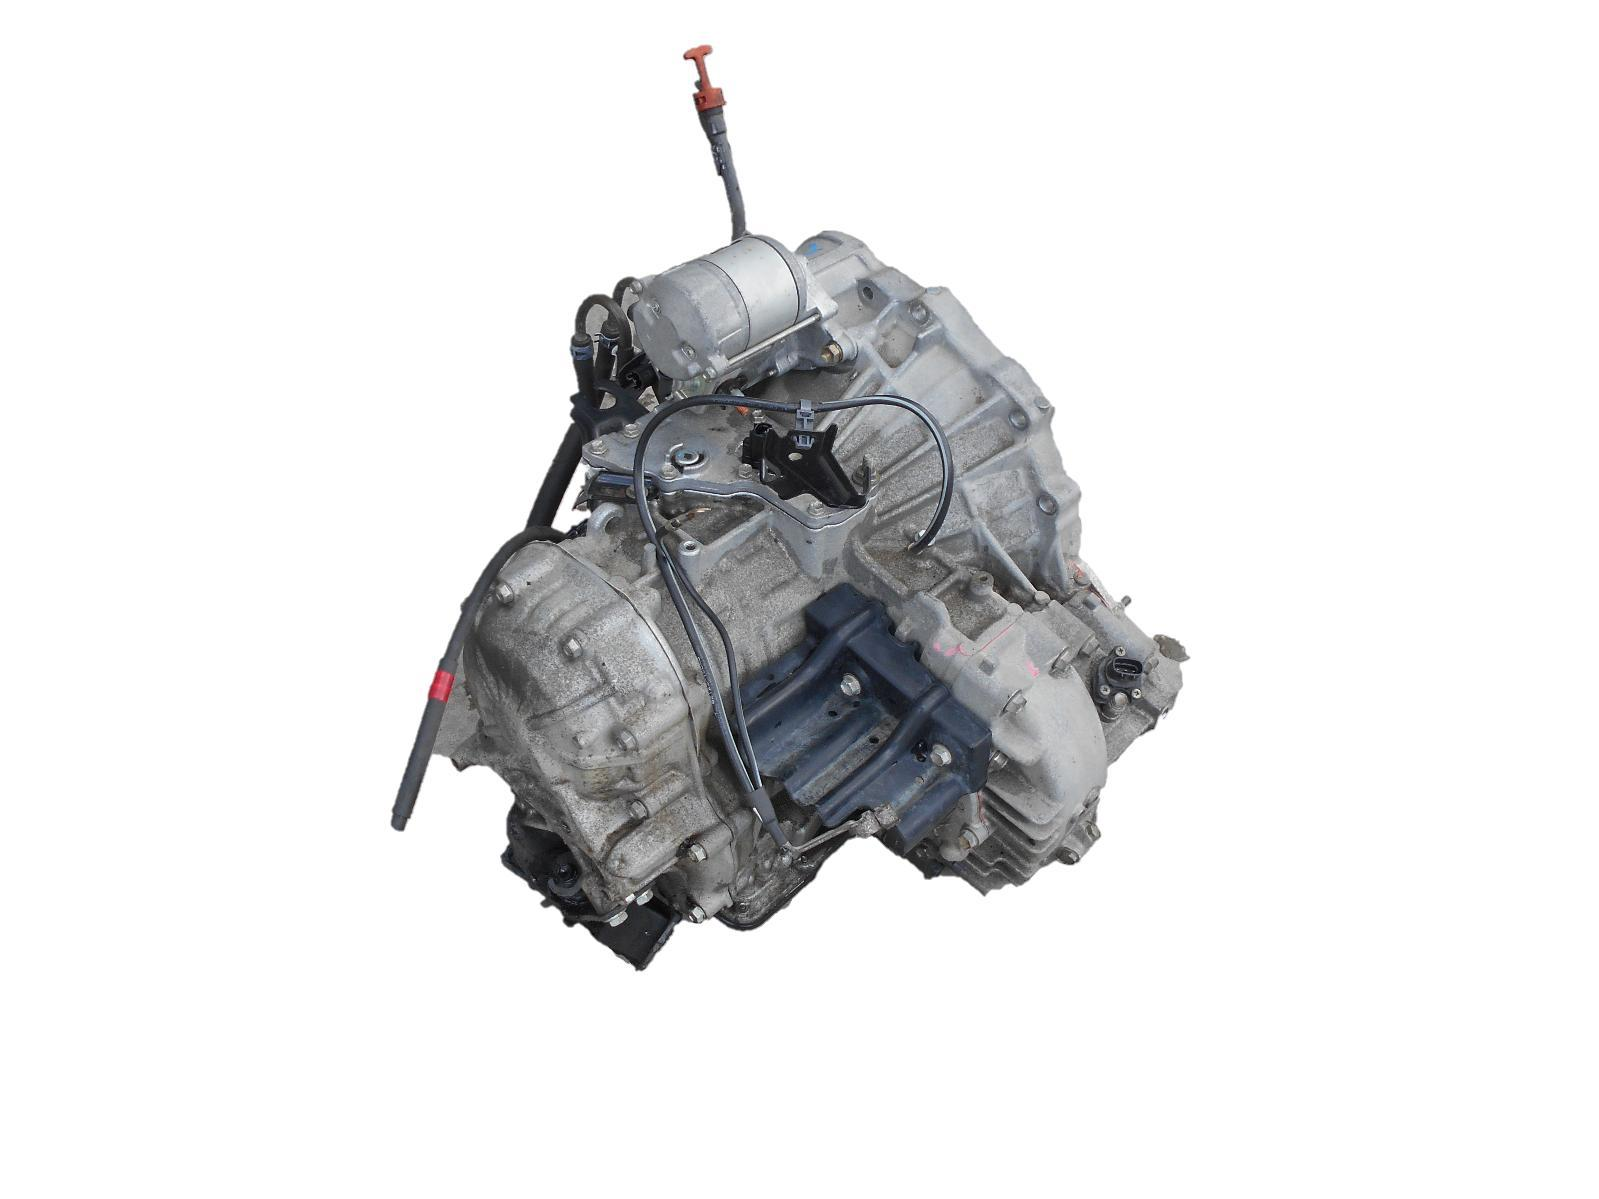 TOYOTA CAMRY, Trans/Gearbox, AUTO, FWD, PETROL, 3.0, 1MZ-FE, SK36, 08/02-05/06